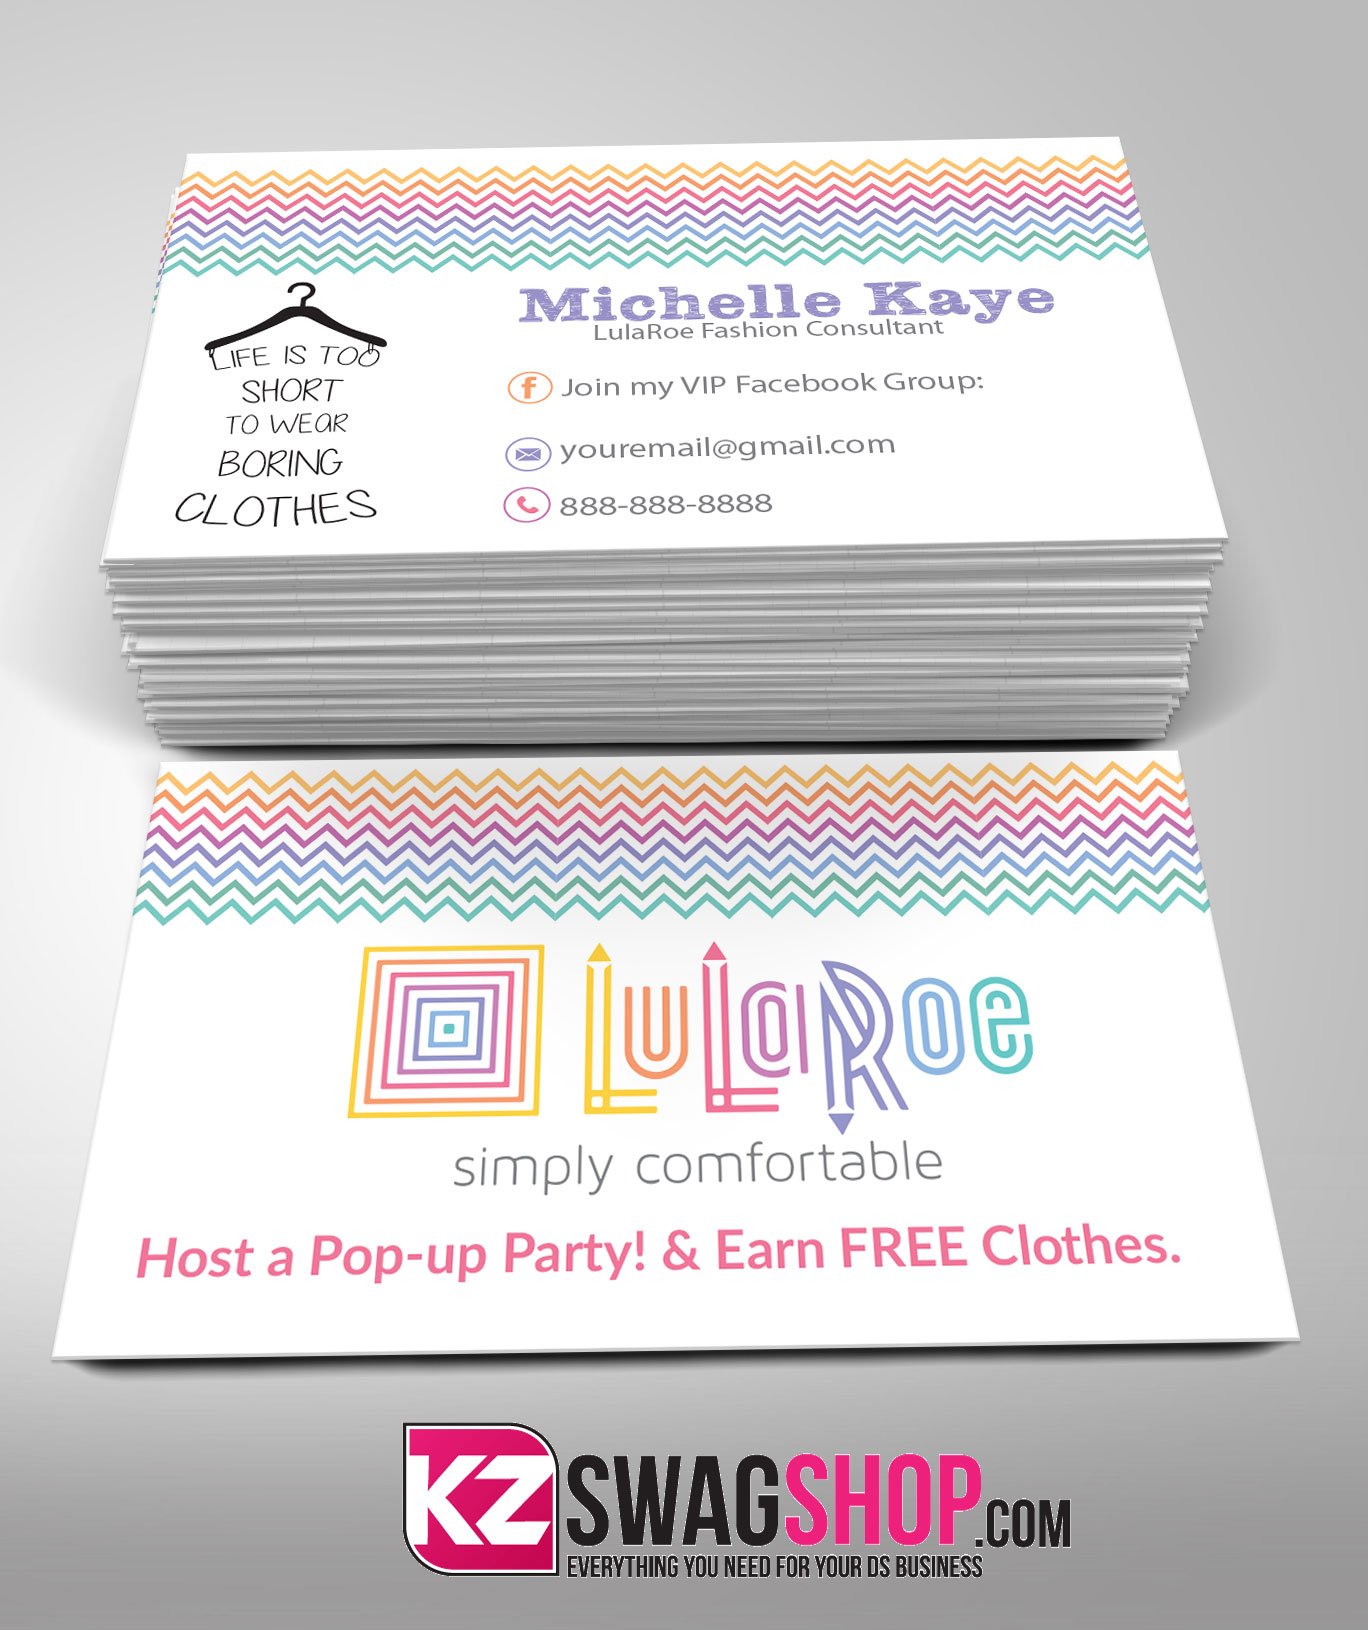 Lularoe business cards 5 kz creative services online store lularoe business cards 5 reheart Images